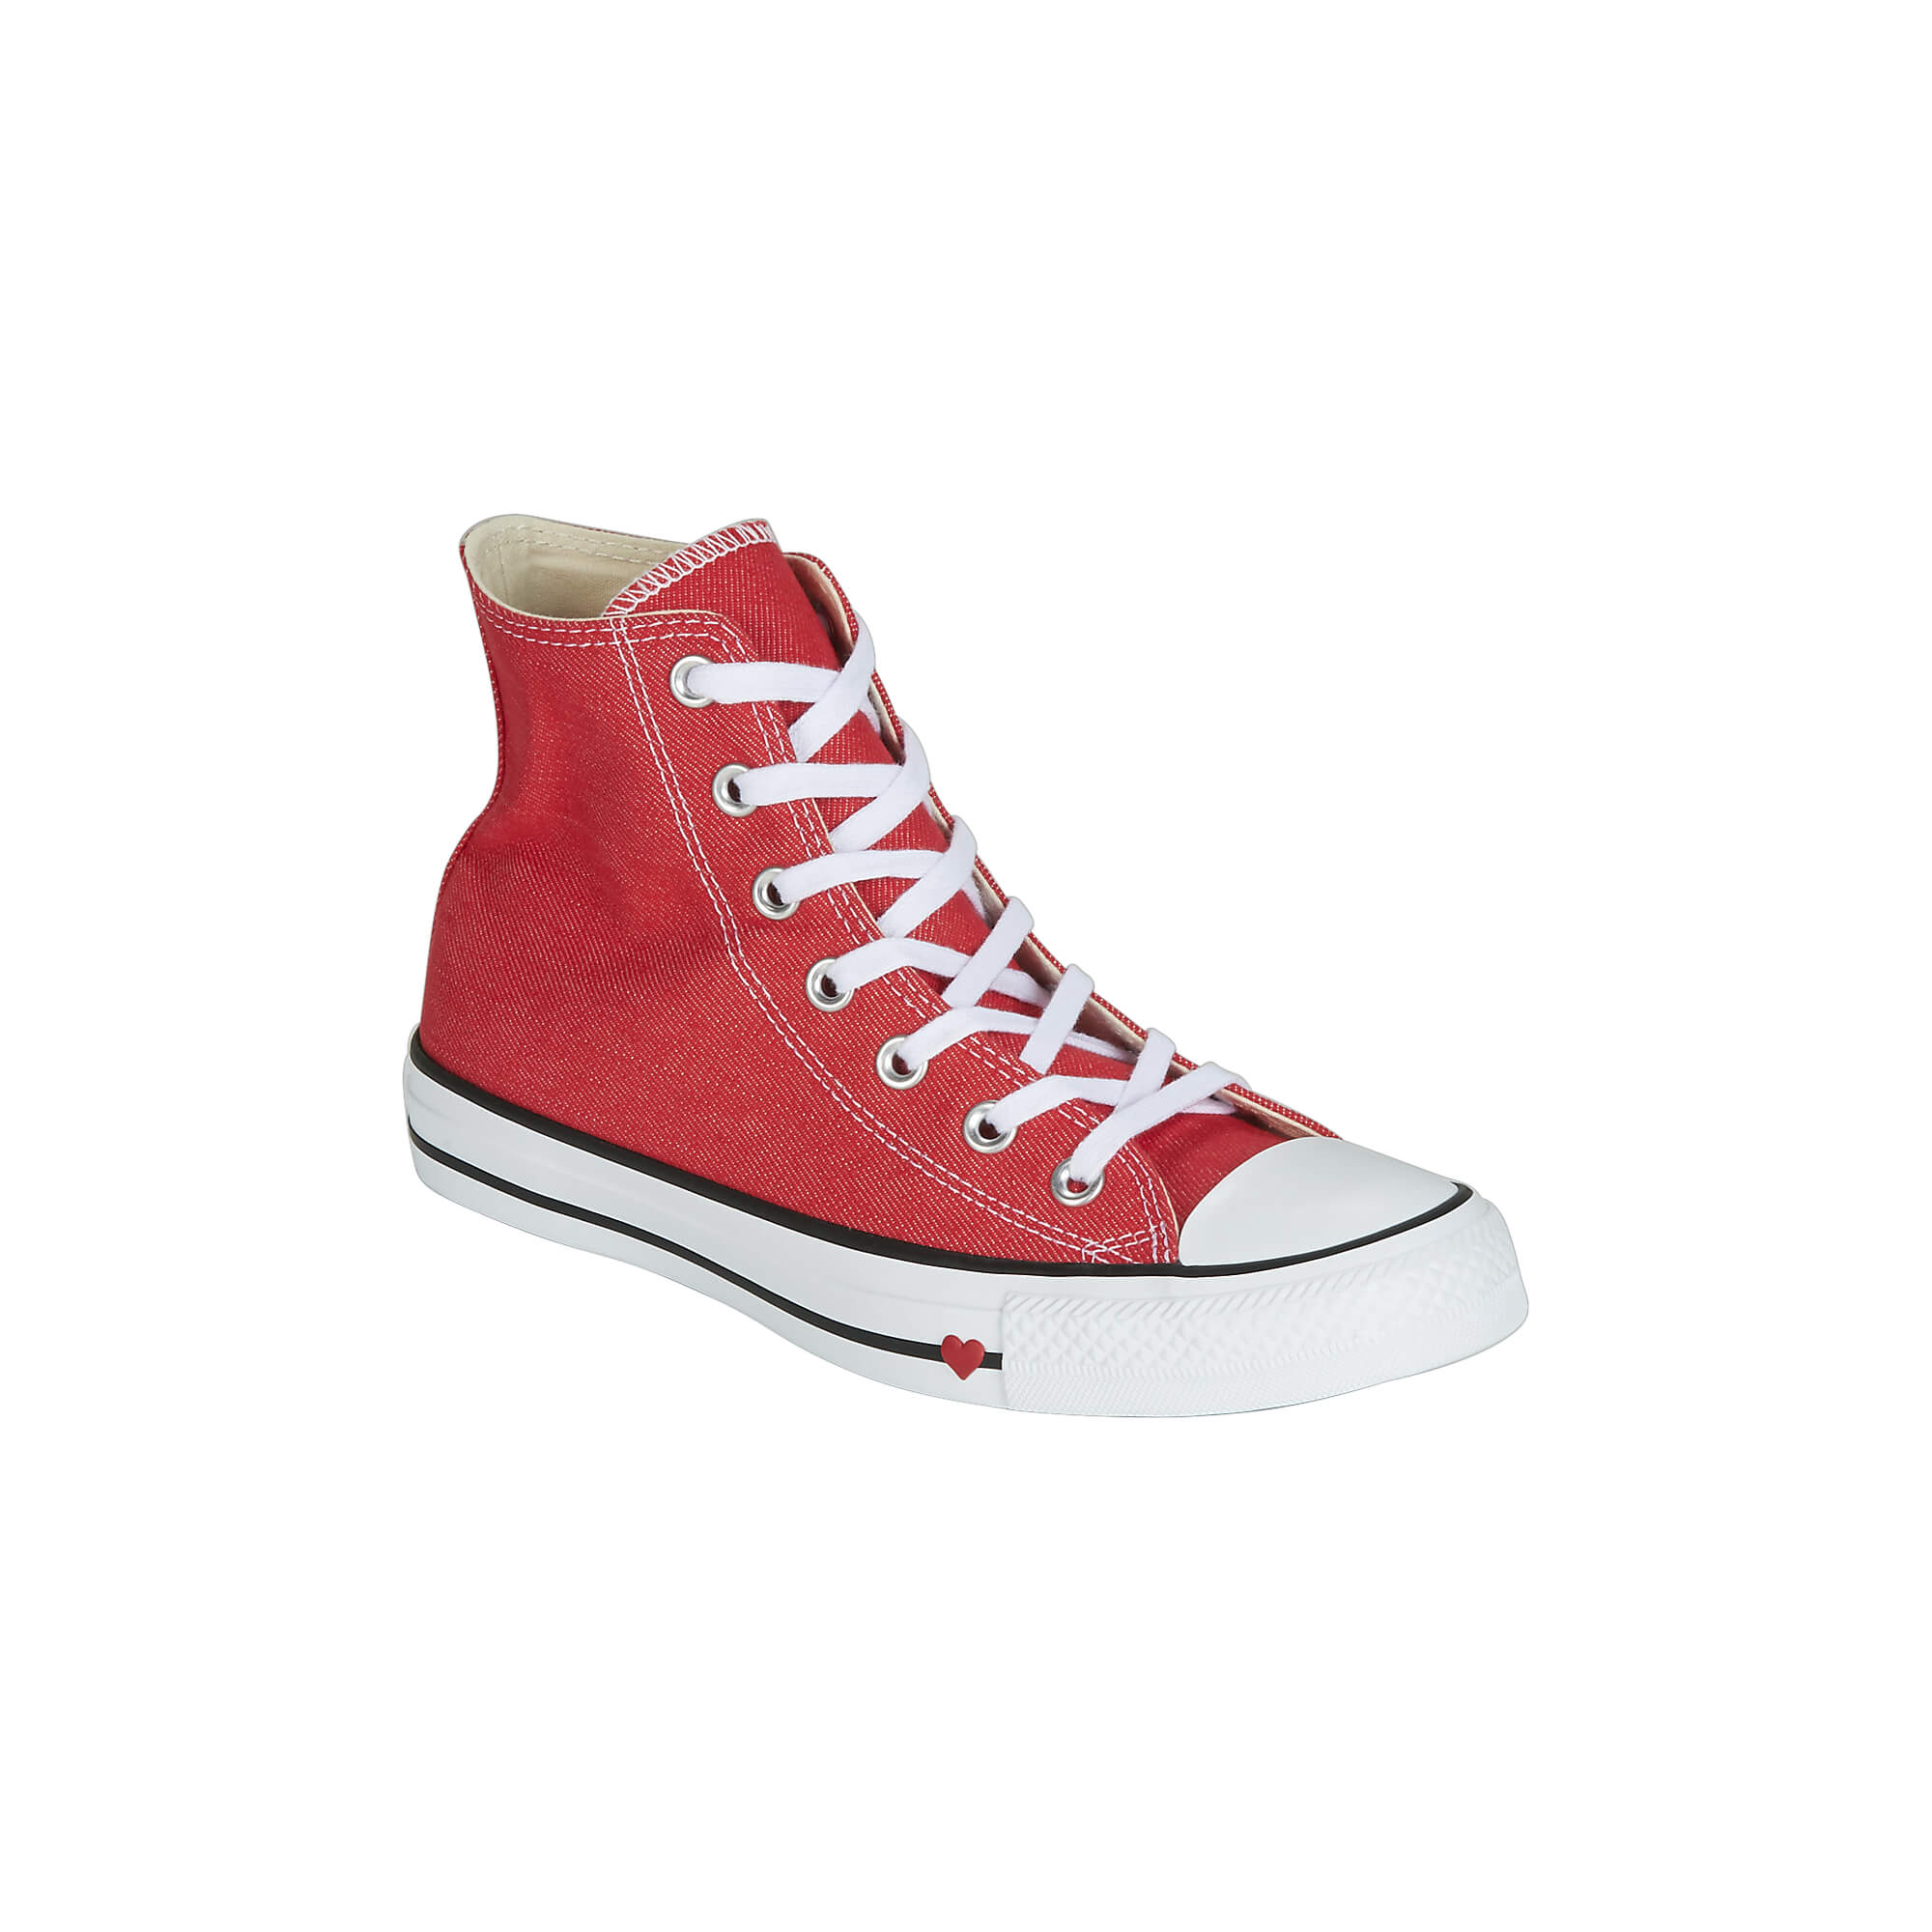 CT All Star Hi Converse Oferta